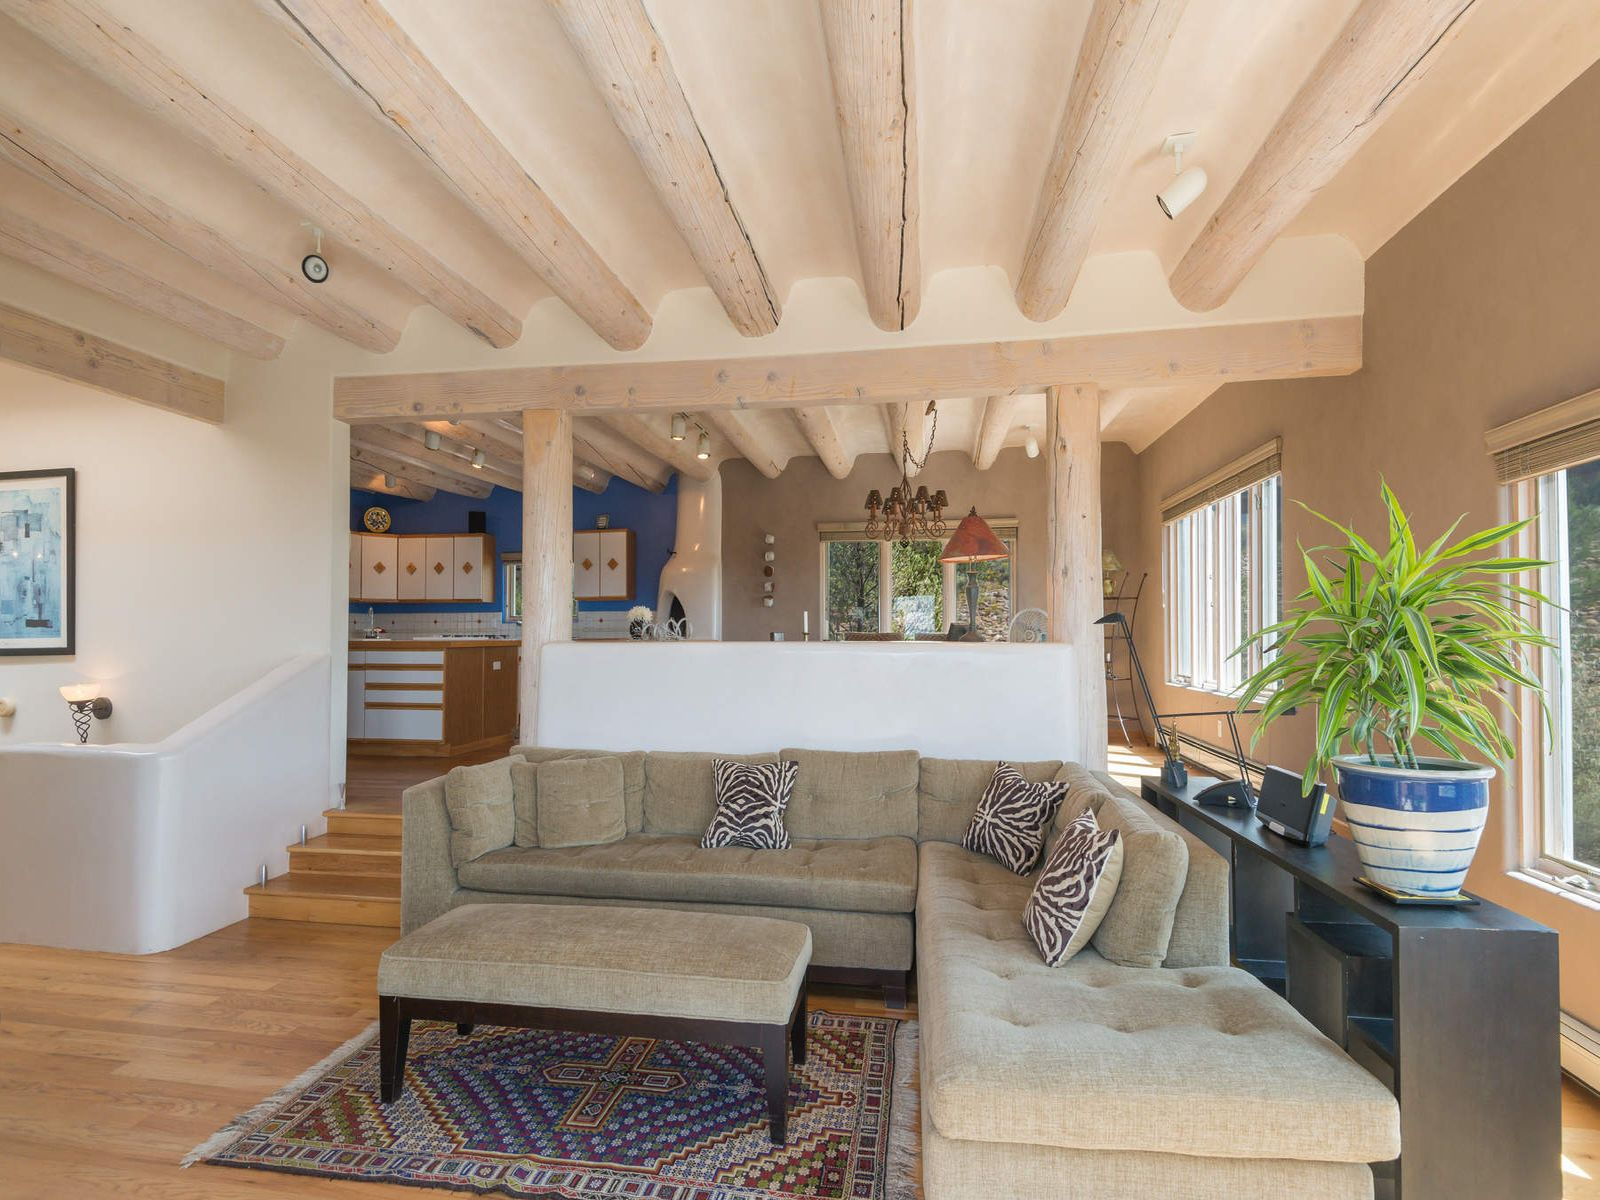 648 La Viveza, Santa Fe NM Townhouse - Santa Fe Real Estate